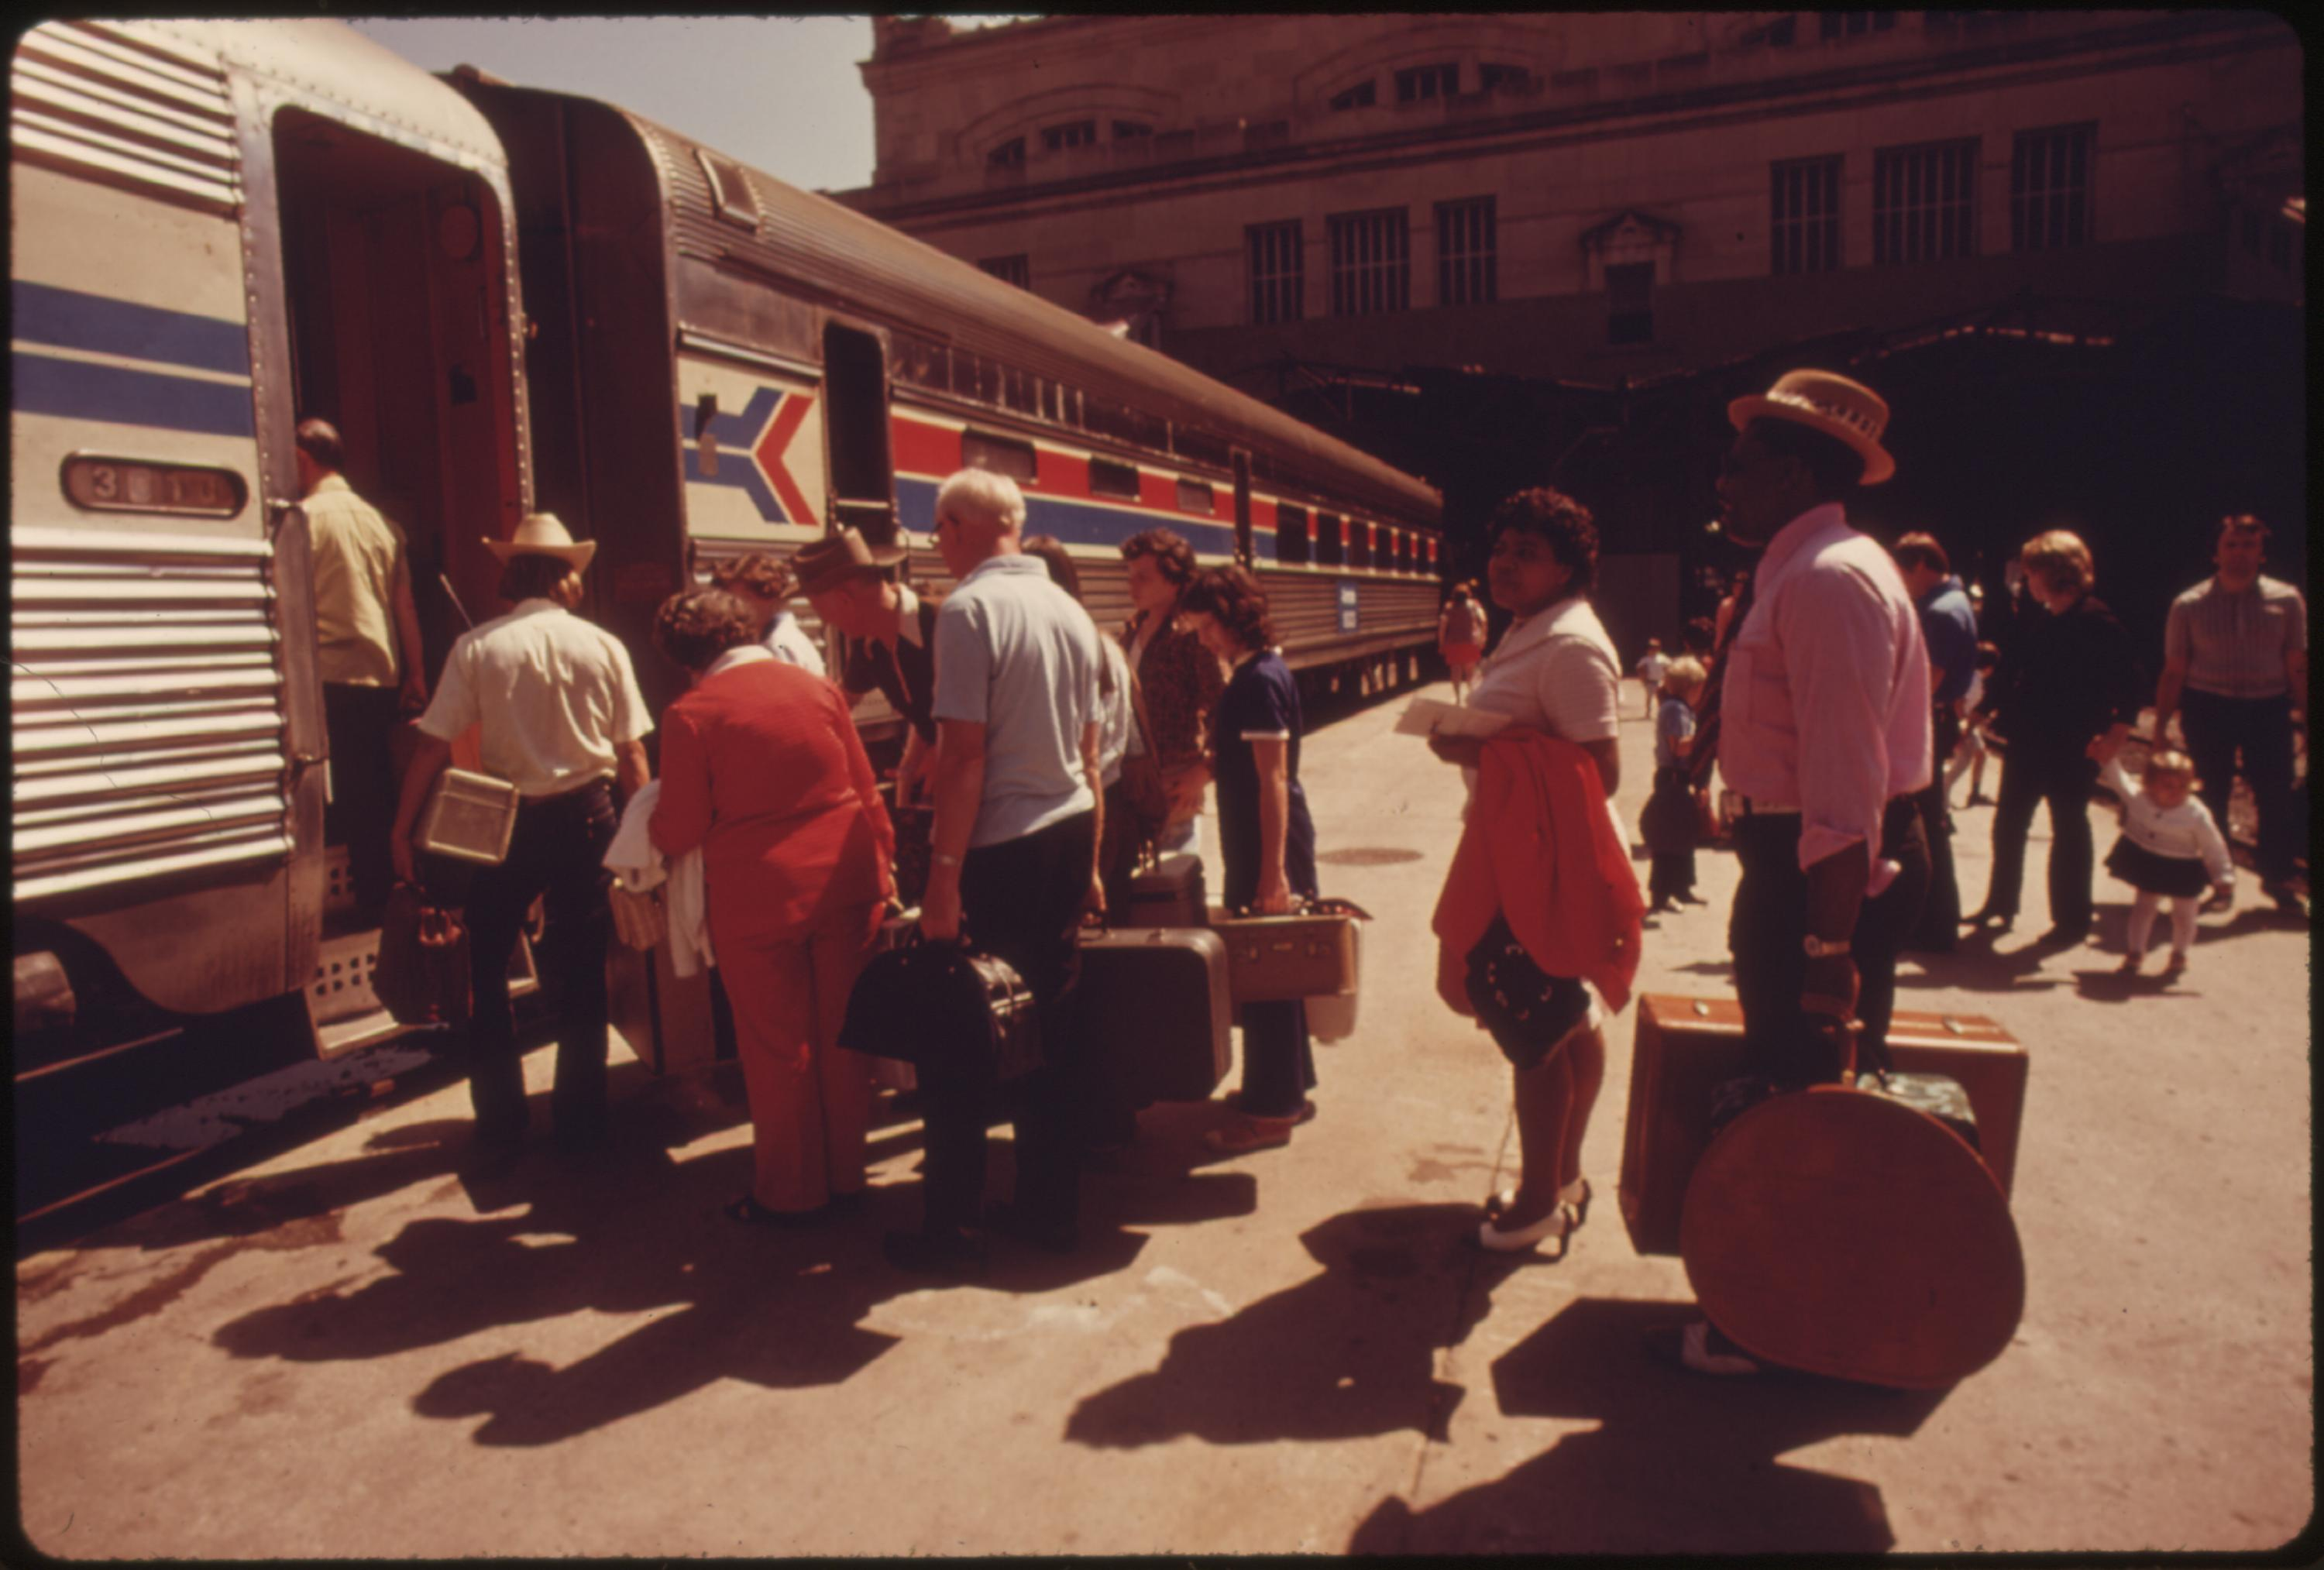 Amtrak train at Union Station in Kansas City, Missouri, being boarded by passengers bound for New York City, June 1974